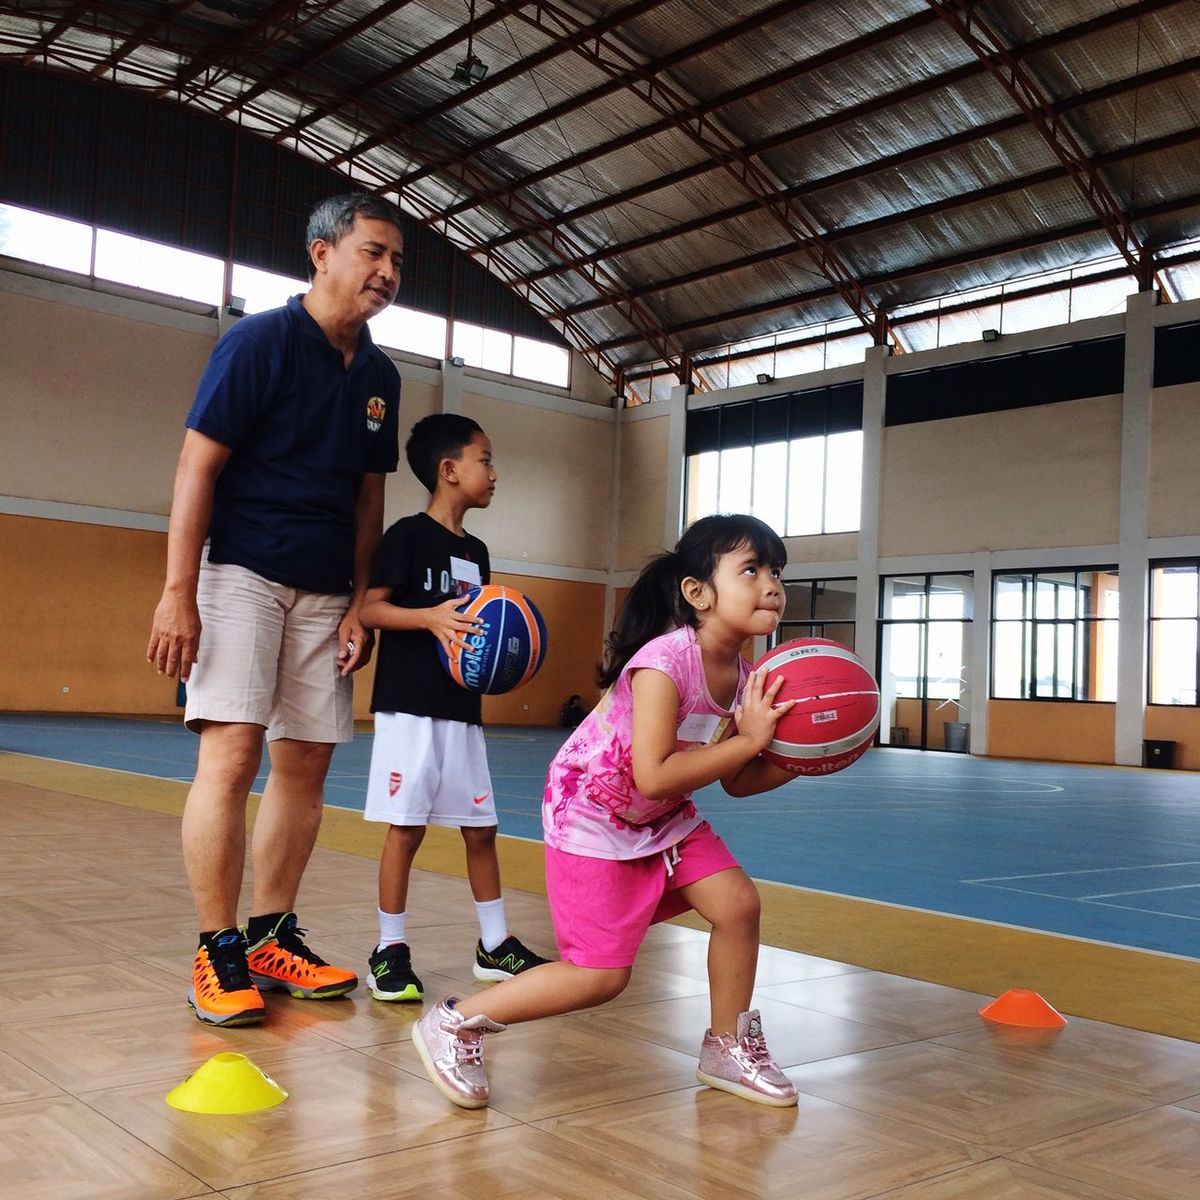 Basketball girl Basketball Basketballgirl Basketball Training Basketball - Sport Indoors  Coach People Physical Education